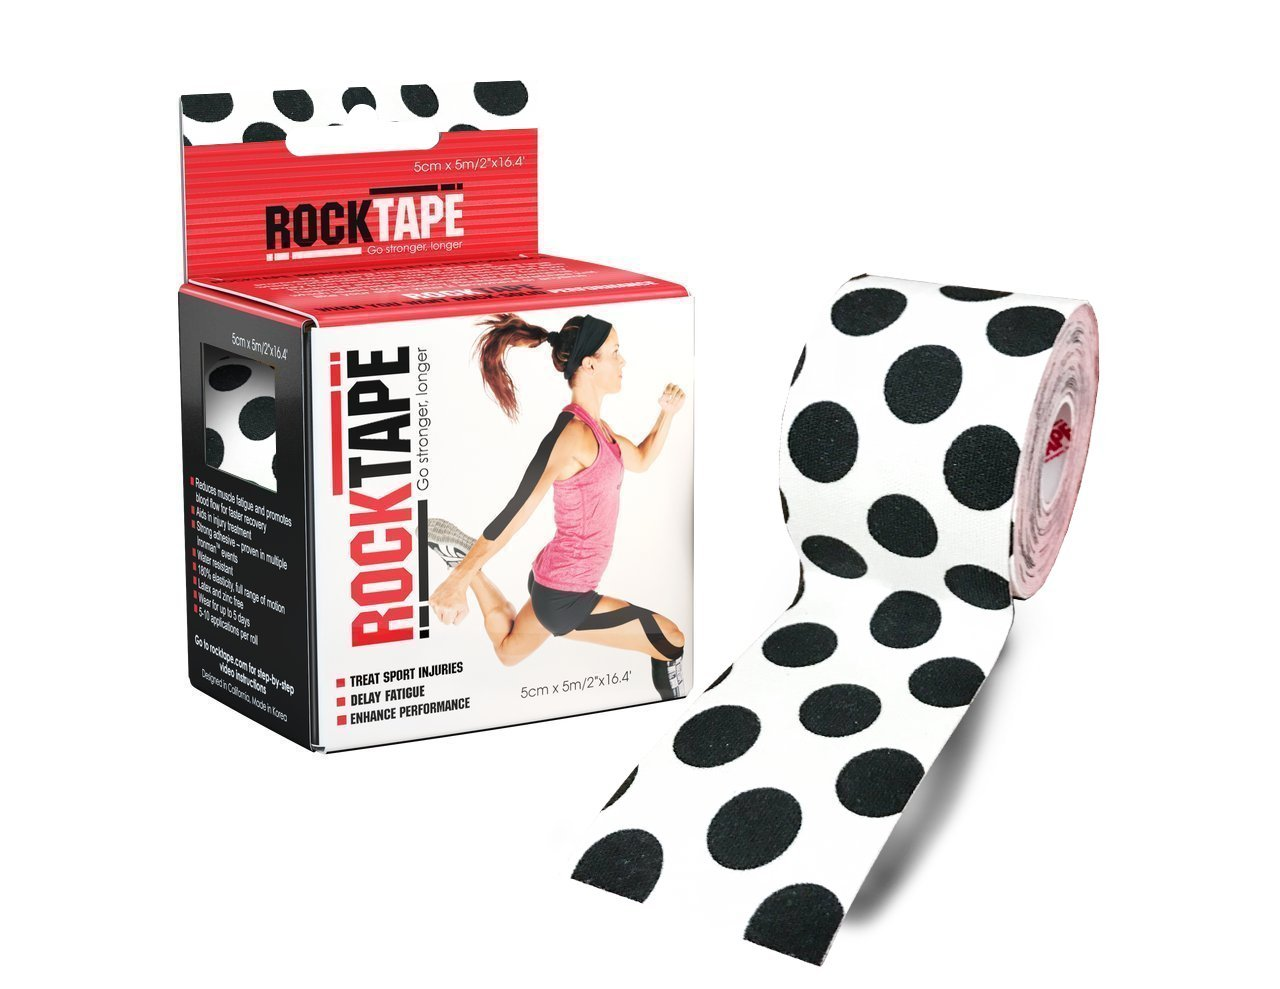 Rocktape Kinesiology Tape for Athletes, Water Resistant, Reduce Pain and Injury Recovery, 180% Elastic Stretch, 1 Roll, 16.4 Feet (Black Polka Dot)